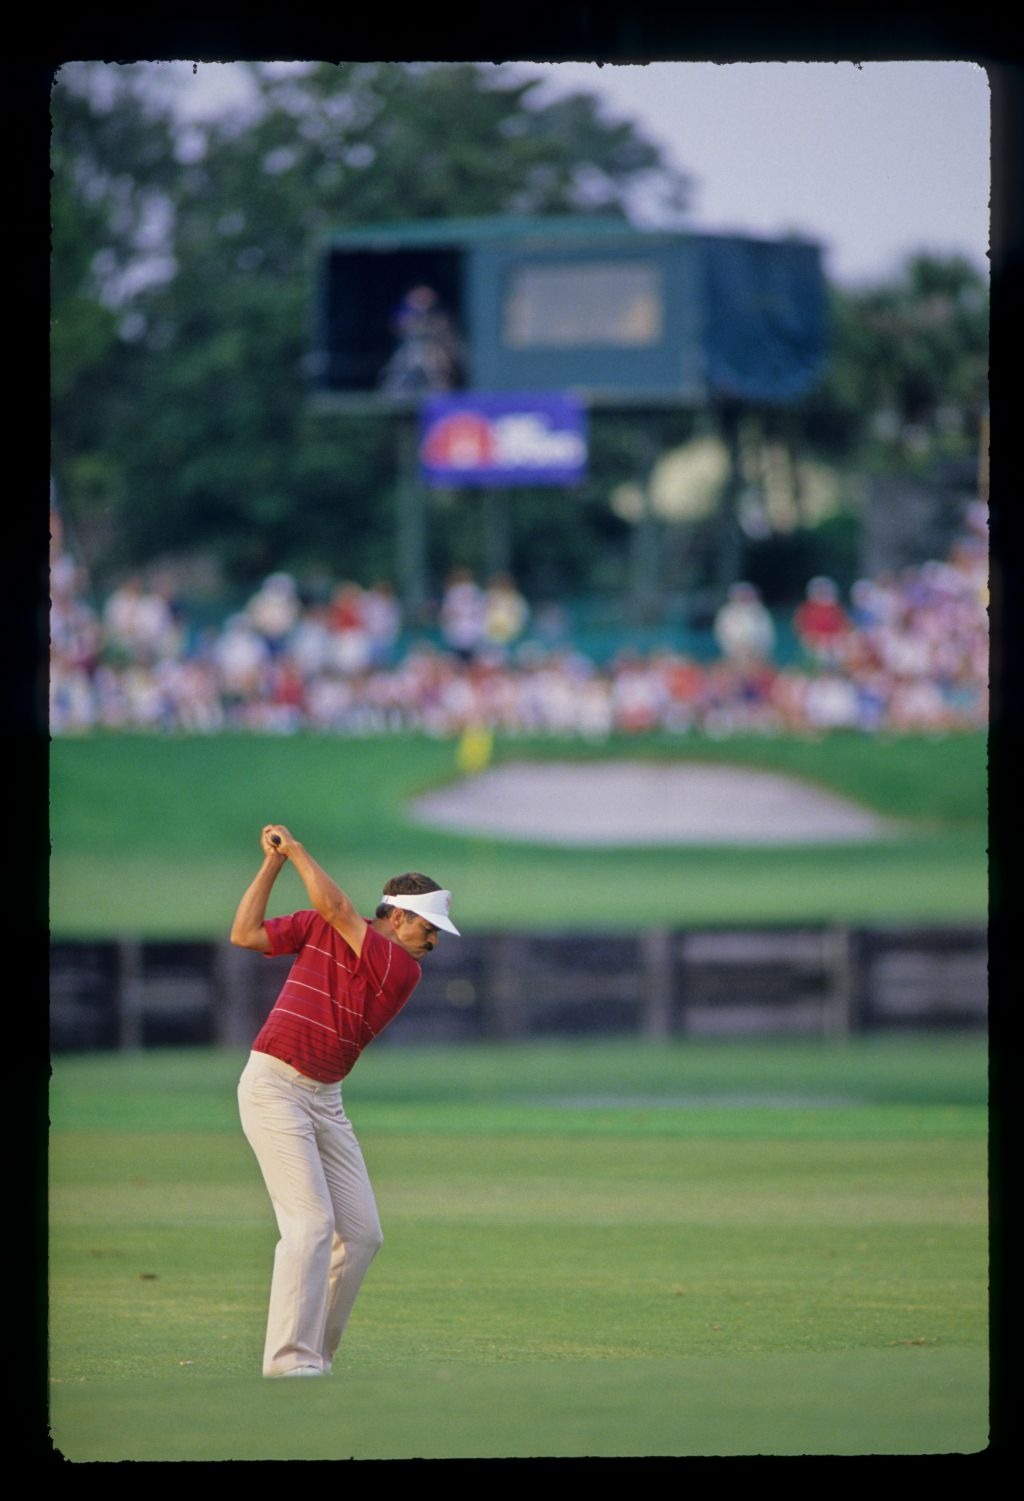 Scott Simpson at the top of his backswing on the fairway during the 1987 Hertz Bay Hill Classic